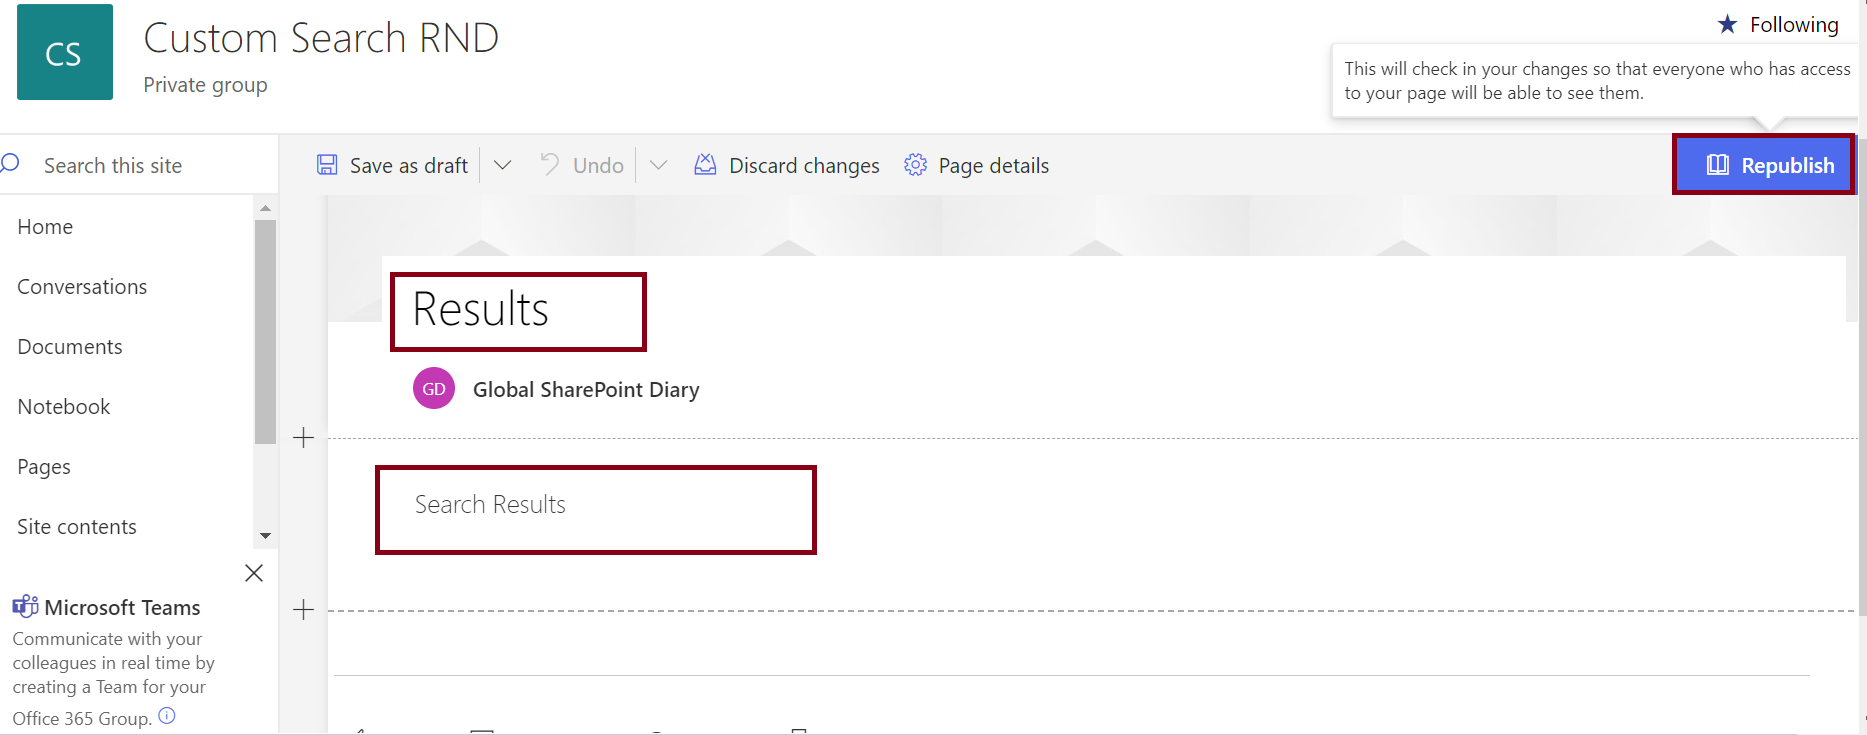 Steps to create a page in SharePoint Online - publish the page